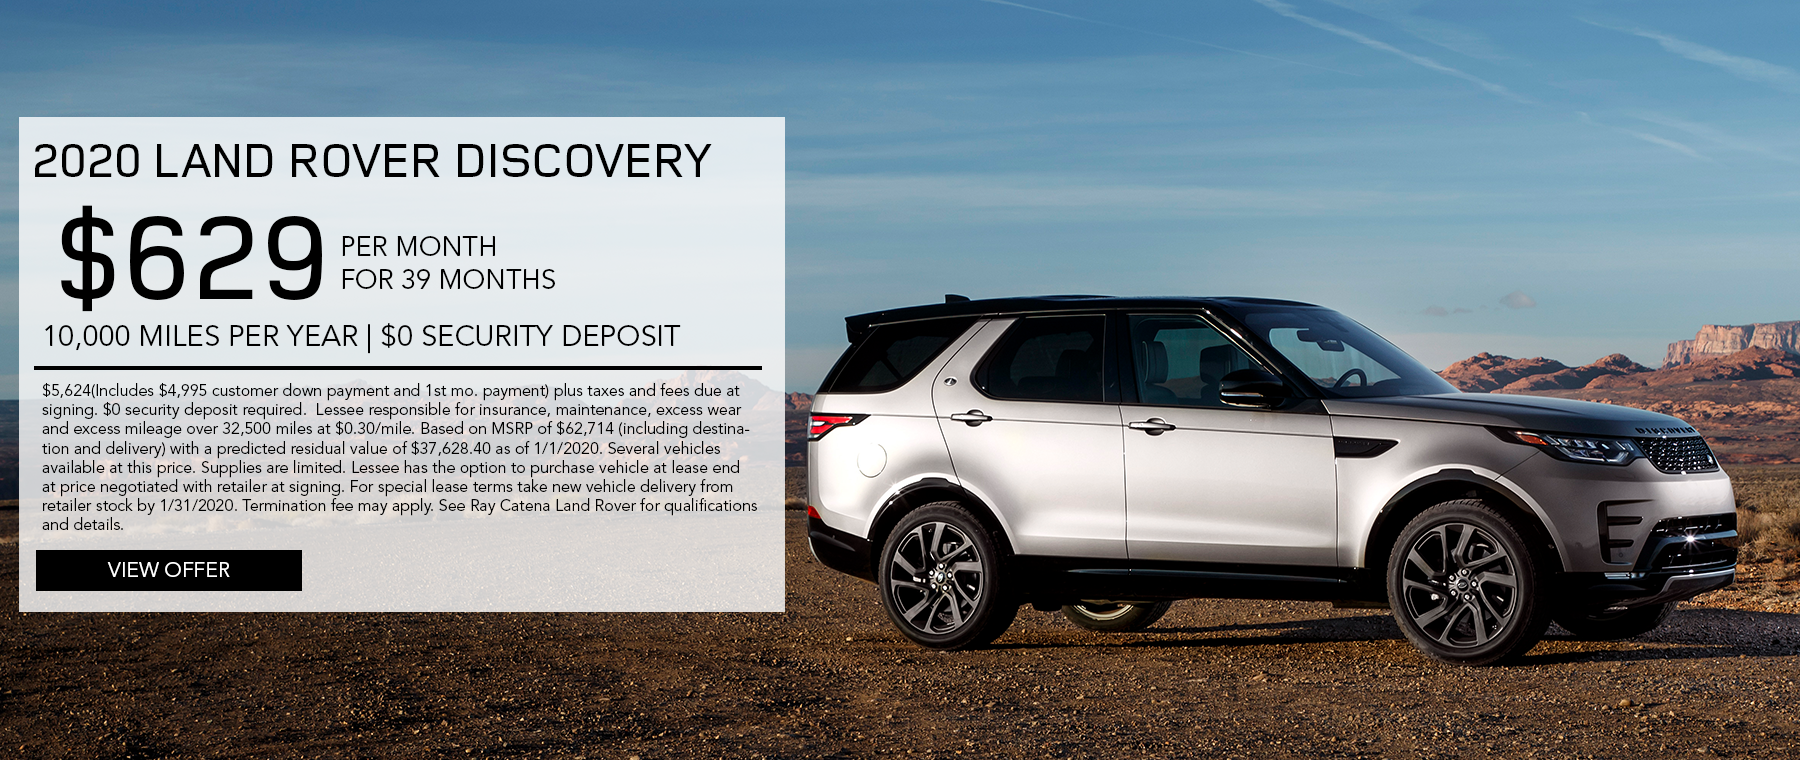 2020 Land Rover Discovery · $629/mo. · 39 mos. · 10,000 miles per year  $5,624(Includes $4,995 customer down payment and 1st mo. payment) plus taxes and fees due at signing. $0 security deposit required.  Lessee responsible for insurance, maintenance, excess wear and excess mileage over 32,500 miles at $0.30/mile. Based on MSRP of $62,714 (including destination and delivery) with a predicted residual value of $37,628.40 as of 1/1/2020. Several vehicles available at this price. Supplies are limited. Lessee has the option to purchase vehicle at lease end at price negotiated with retailer at signing. For special lease terms take new vehicle delivery from retailer stock by 1/31/2020. Termination fee may apply. See Ray Catena Land Rover for qualifications and details. Click to view offer. Silver Discovery in desert.